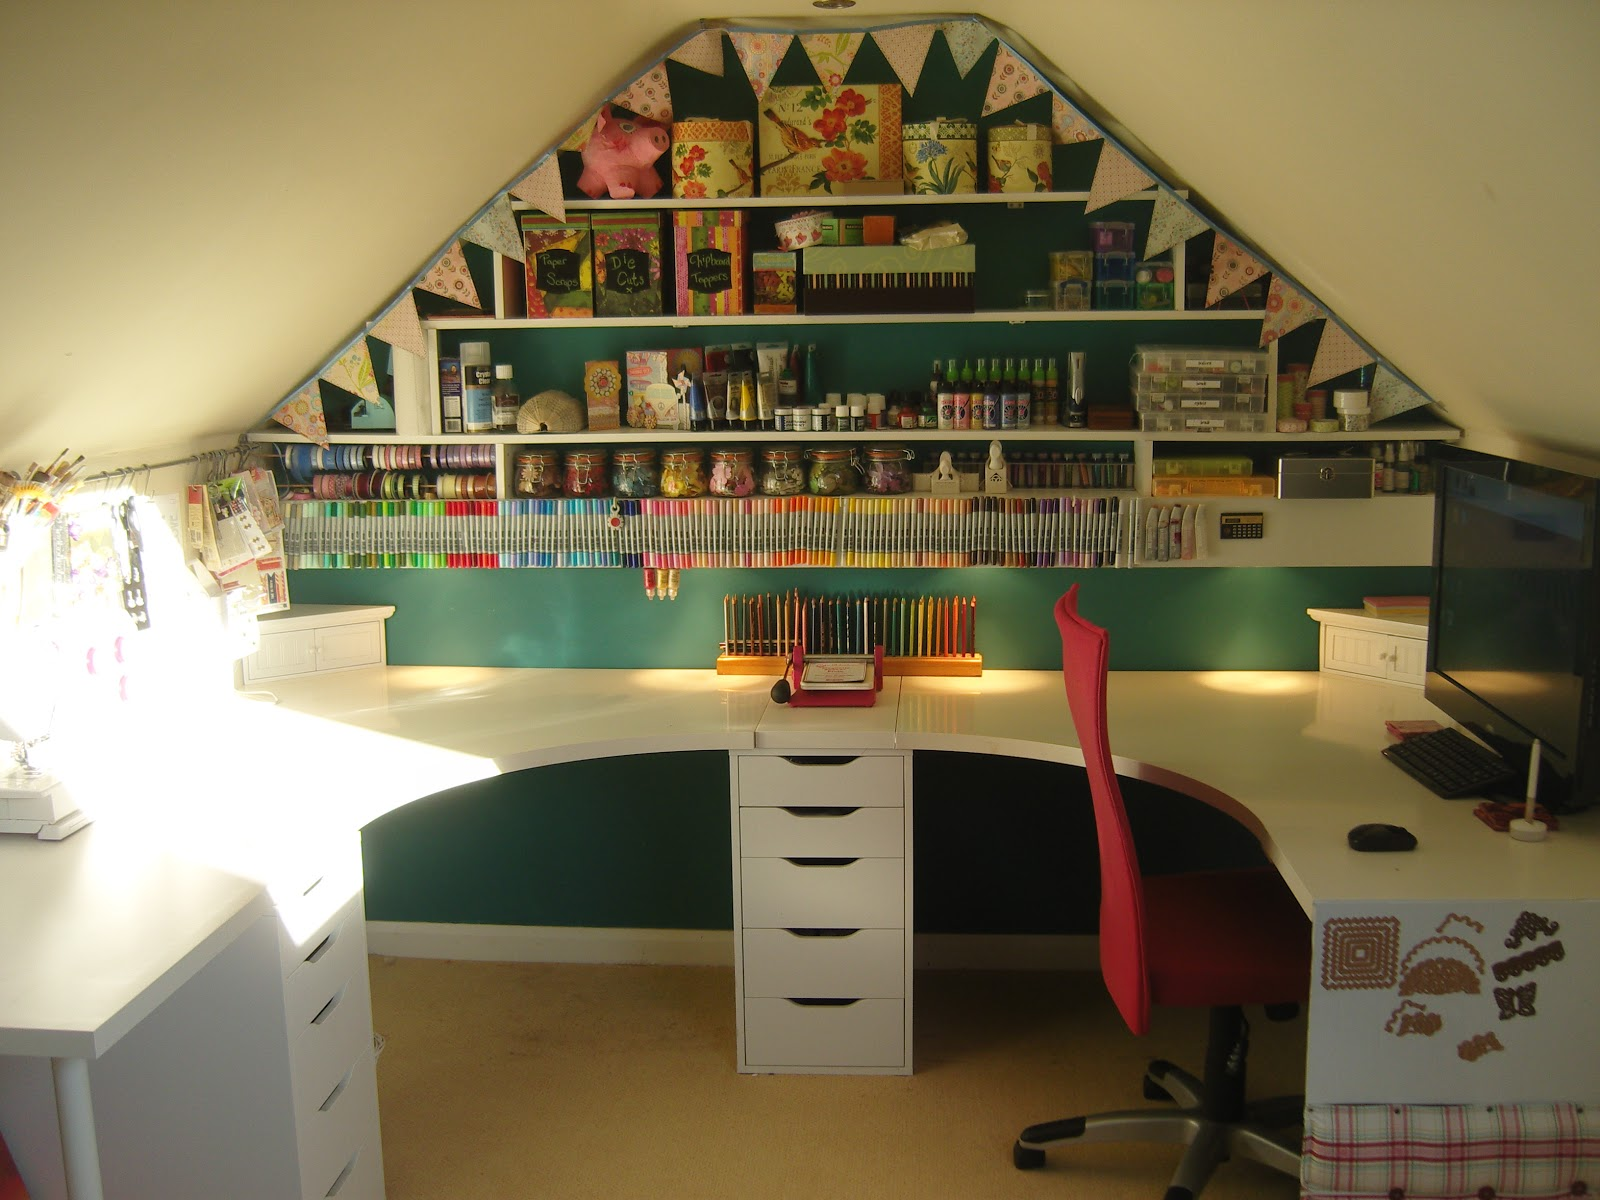 Transfer to personal scrap room ideas on pinterest craft for Crafty bedroom ideas